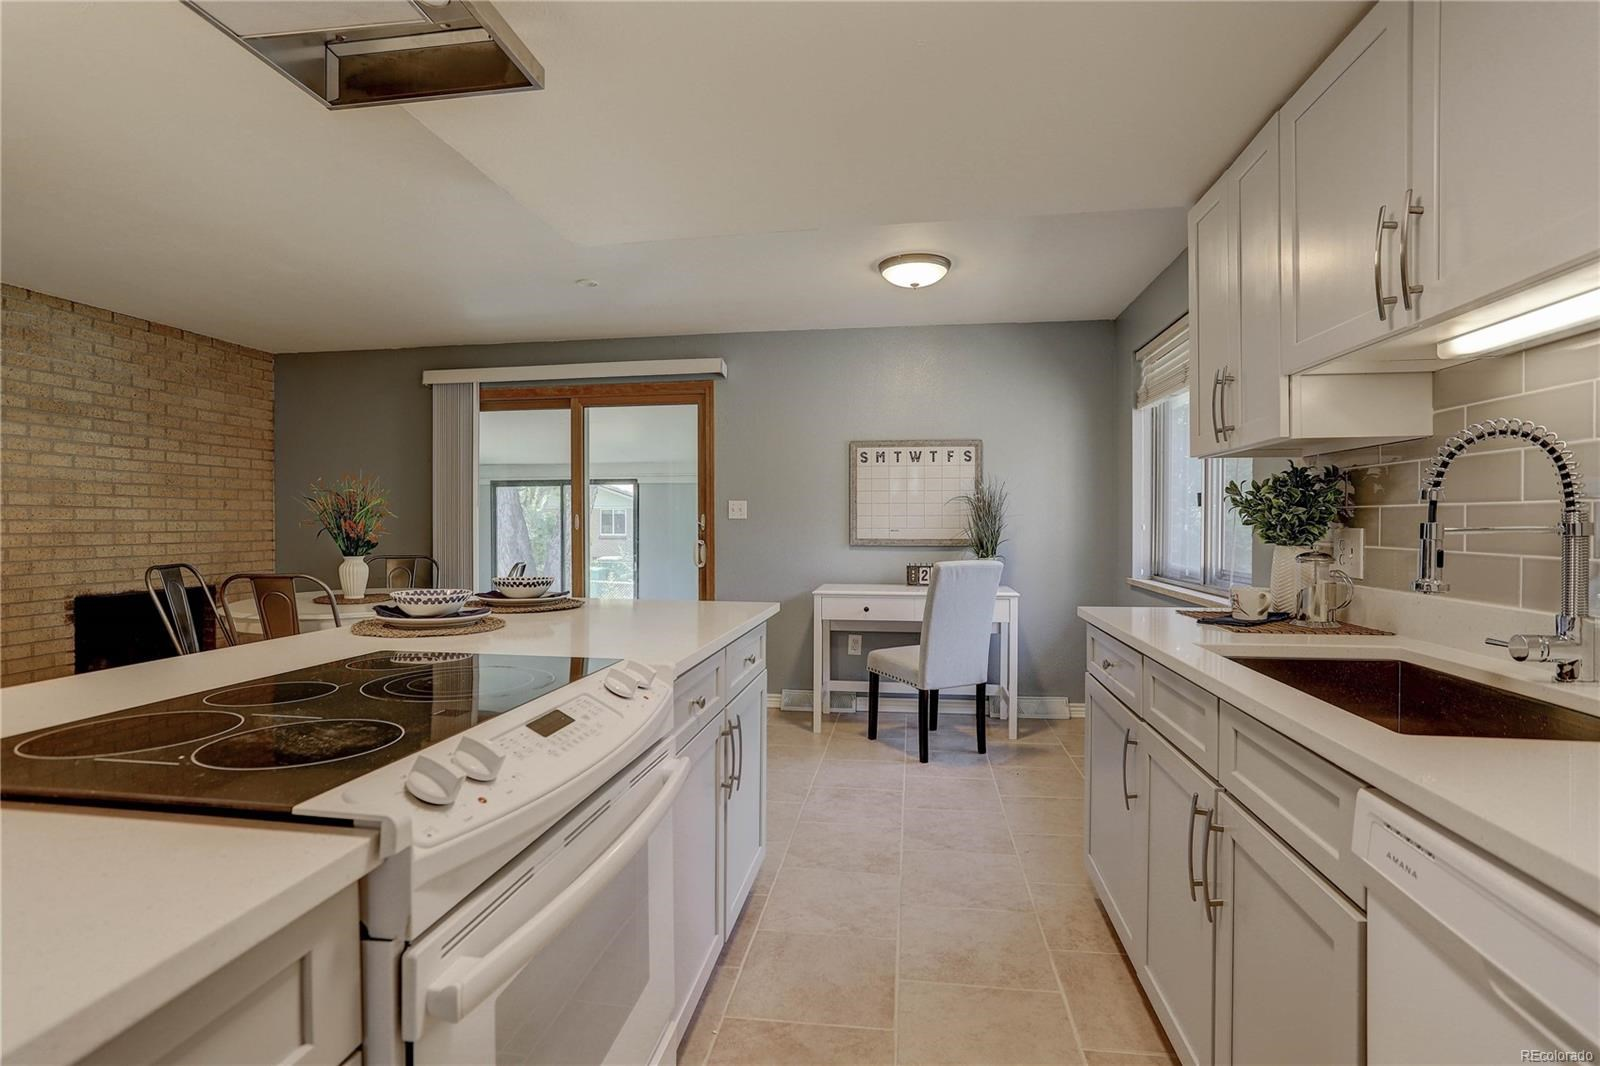 MLS# 2968148 - 4 - 2931 S Downing Street, Englewood, CO 80113